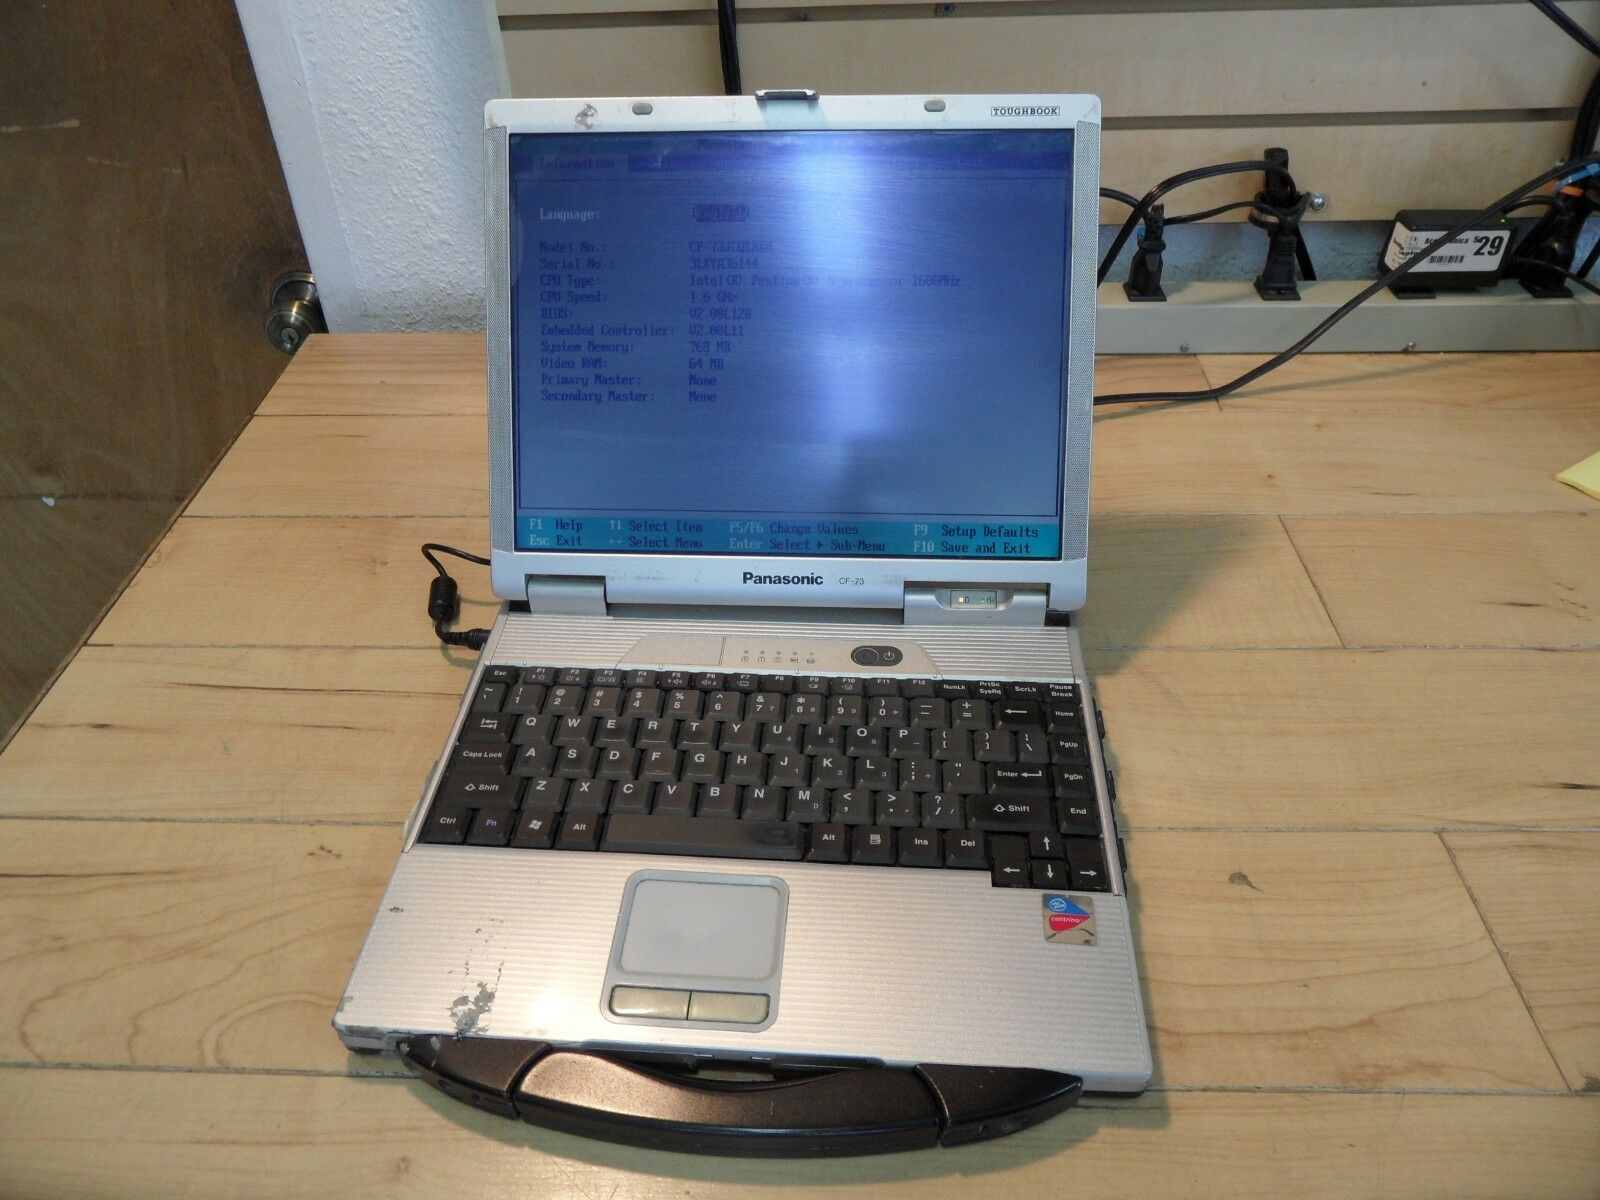 Panasonic Toughbook CF-73 Parts Laptop No Hard Drive Posted Bios